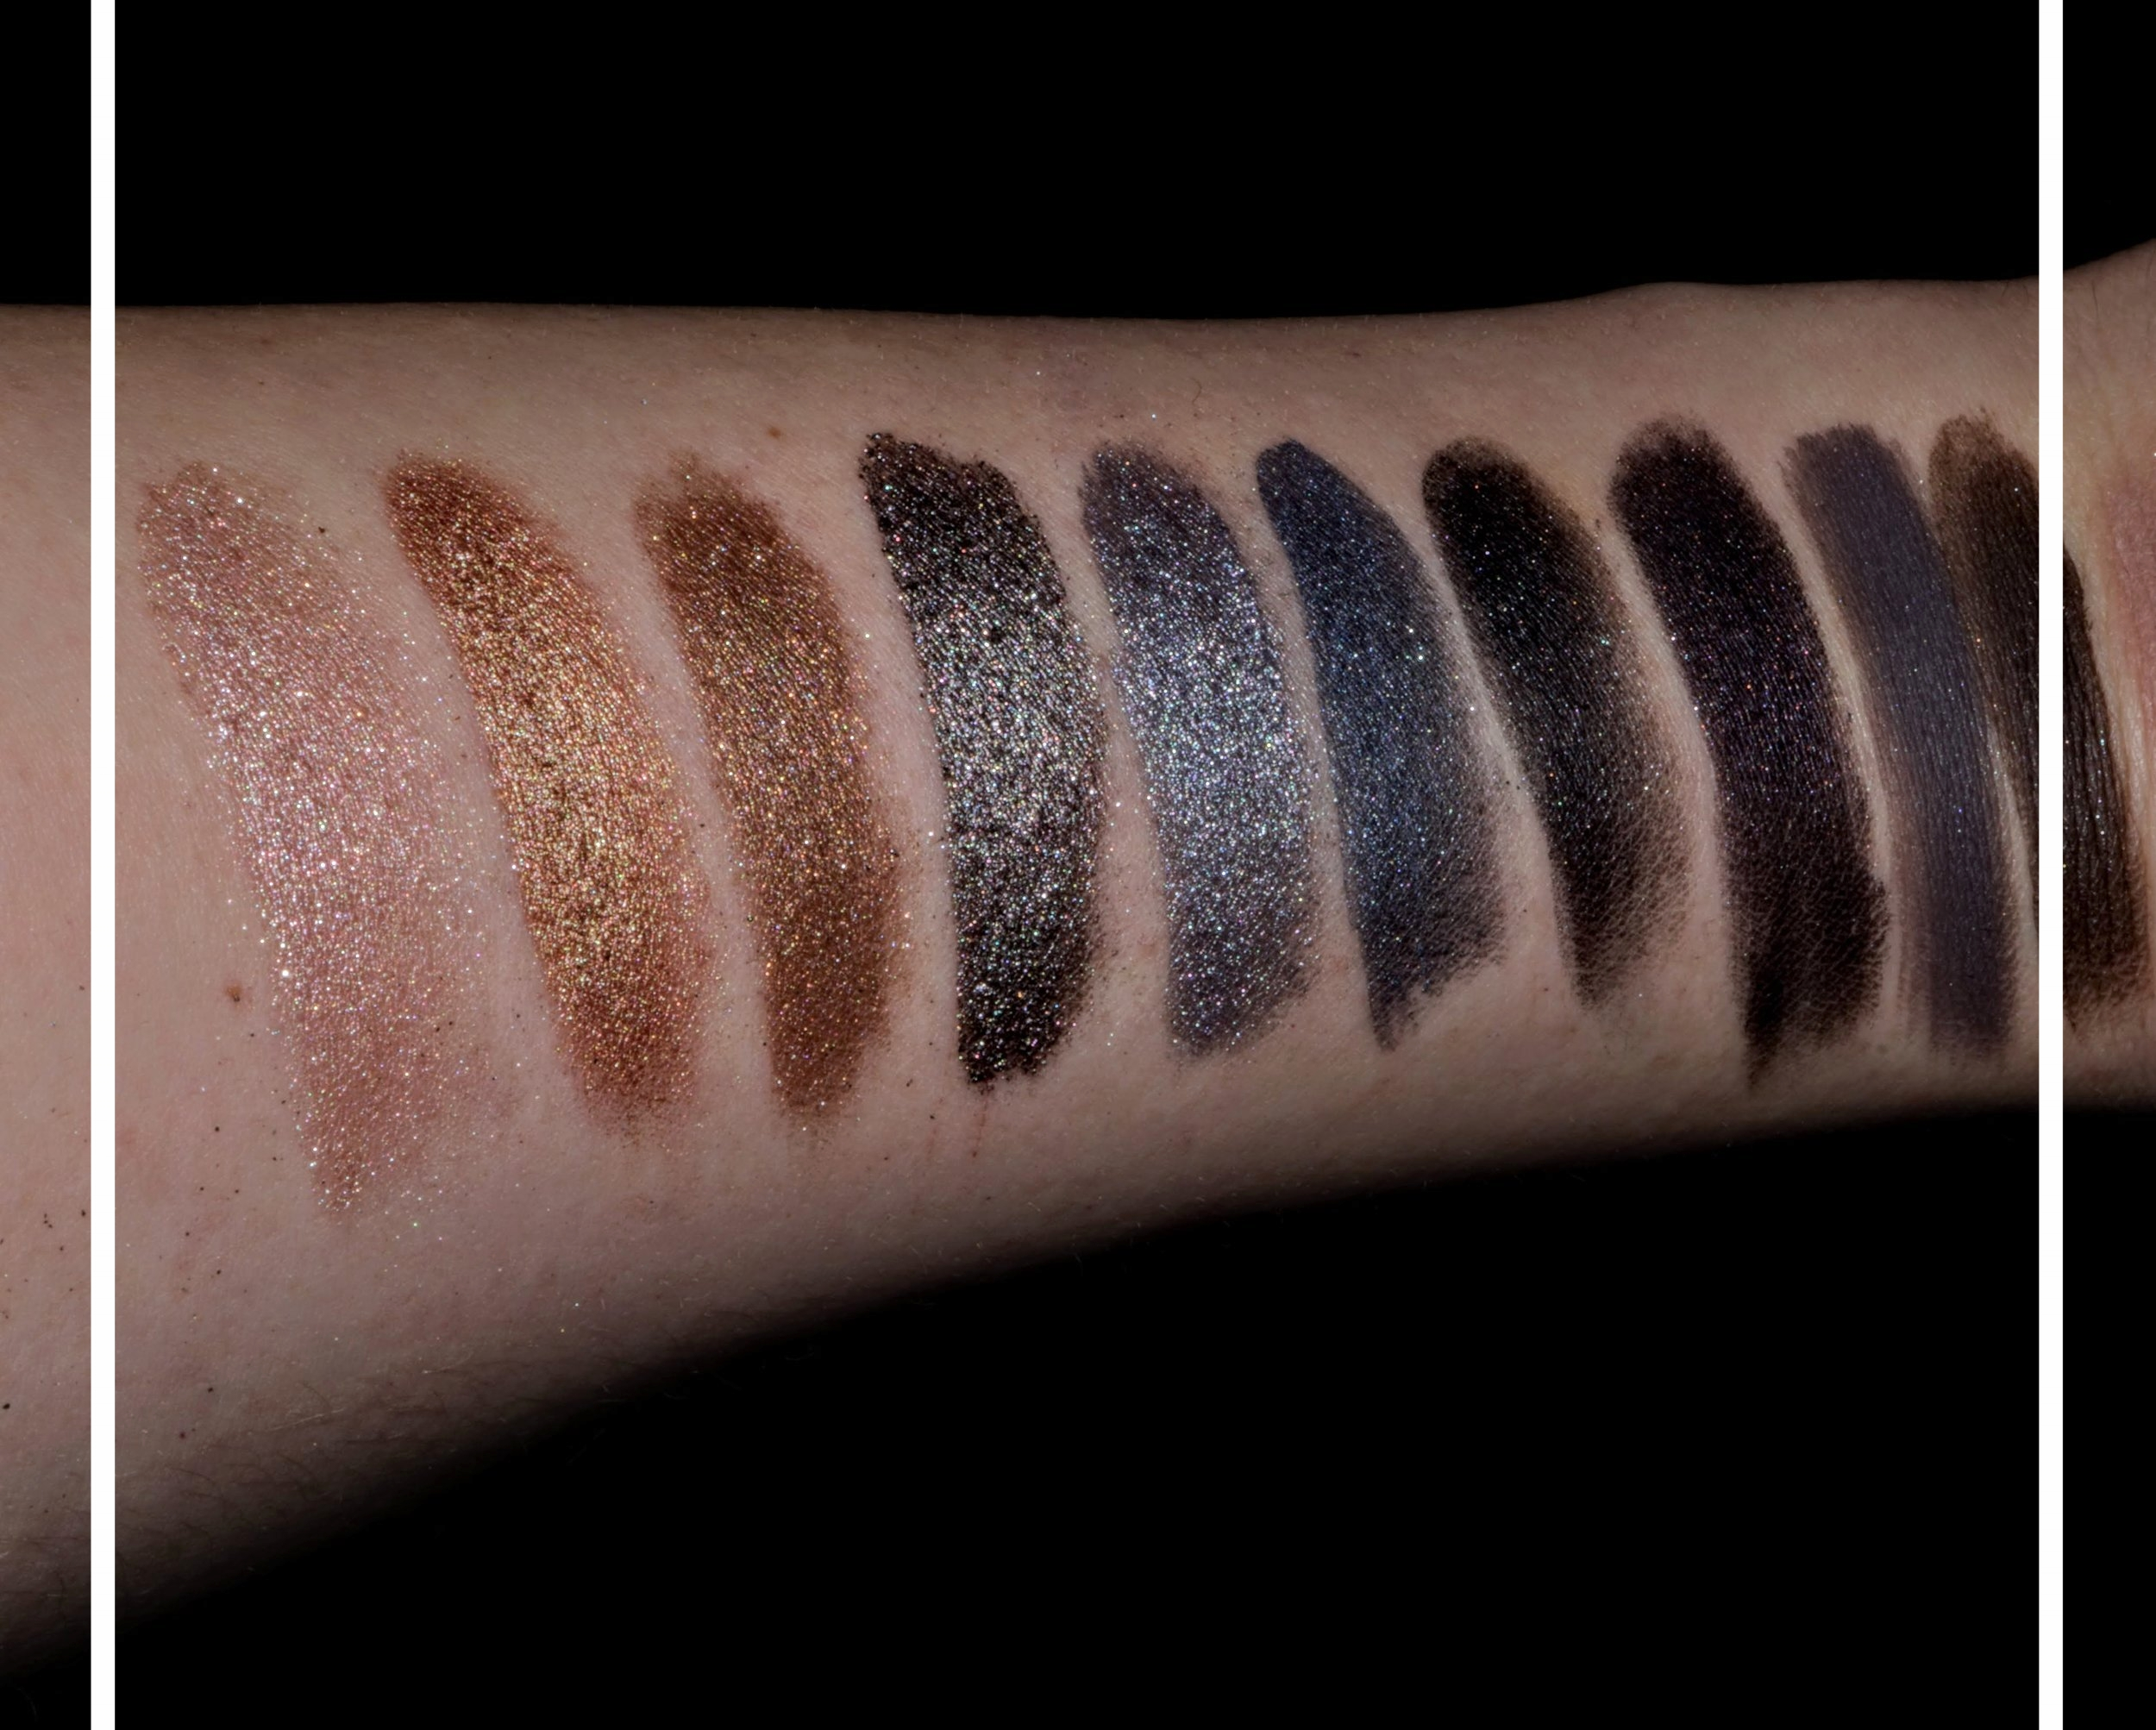 Swatches - TIP: I sprayed some water on my brush, then swiped the shadow. It makes it last longer, prevents fallout, and looks amazing!